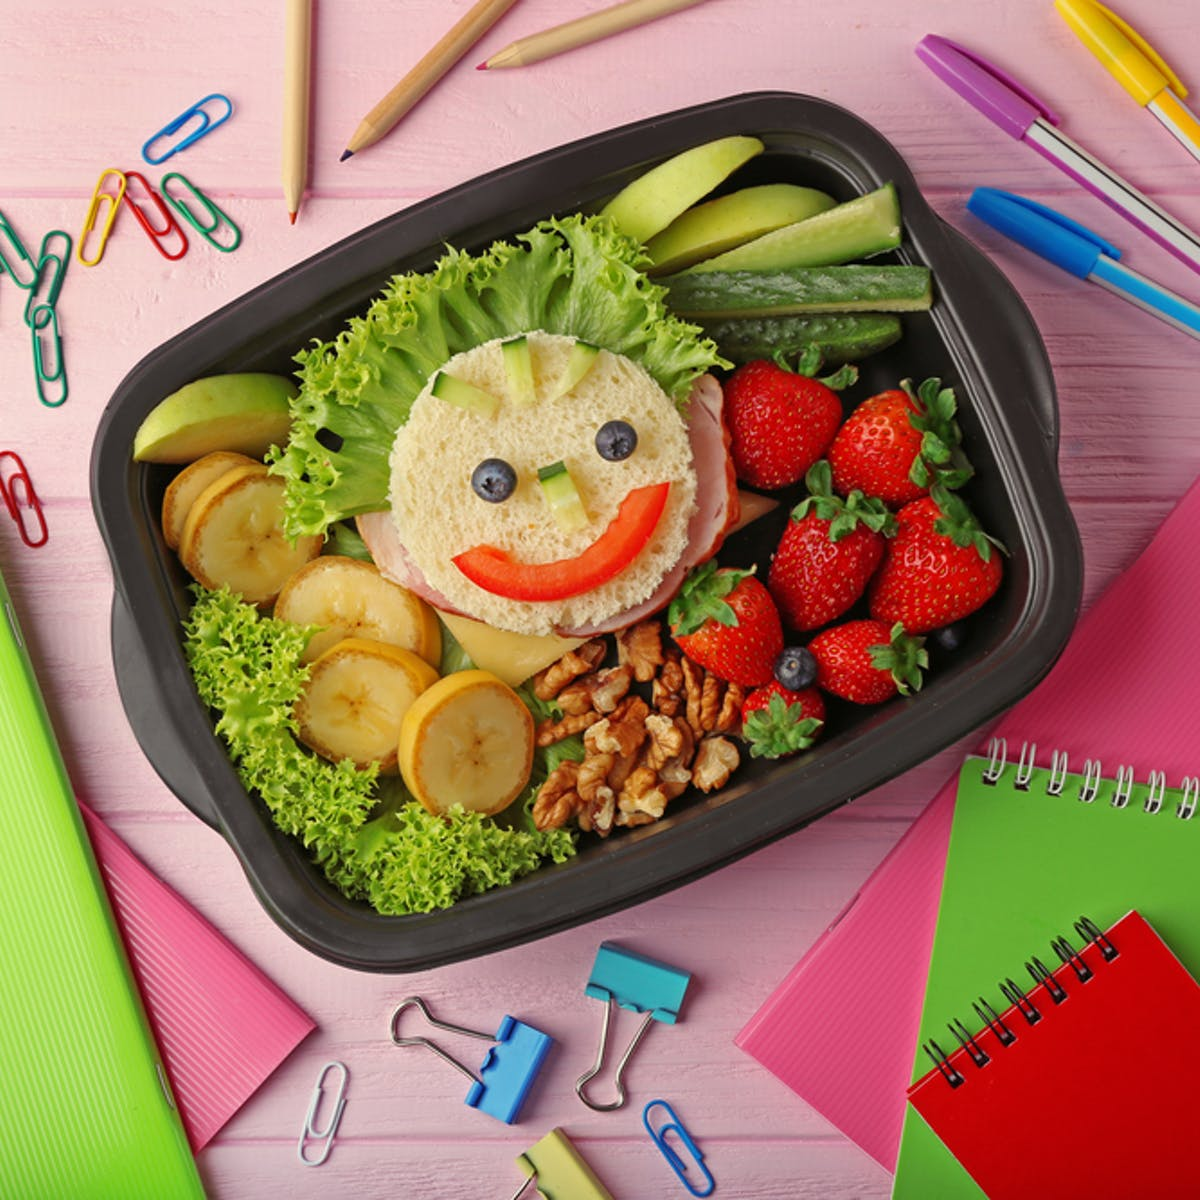 Tips For Kids Food Tending That Parents Should Know About post thumbnail image